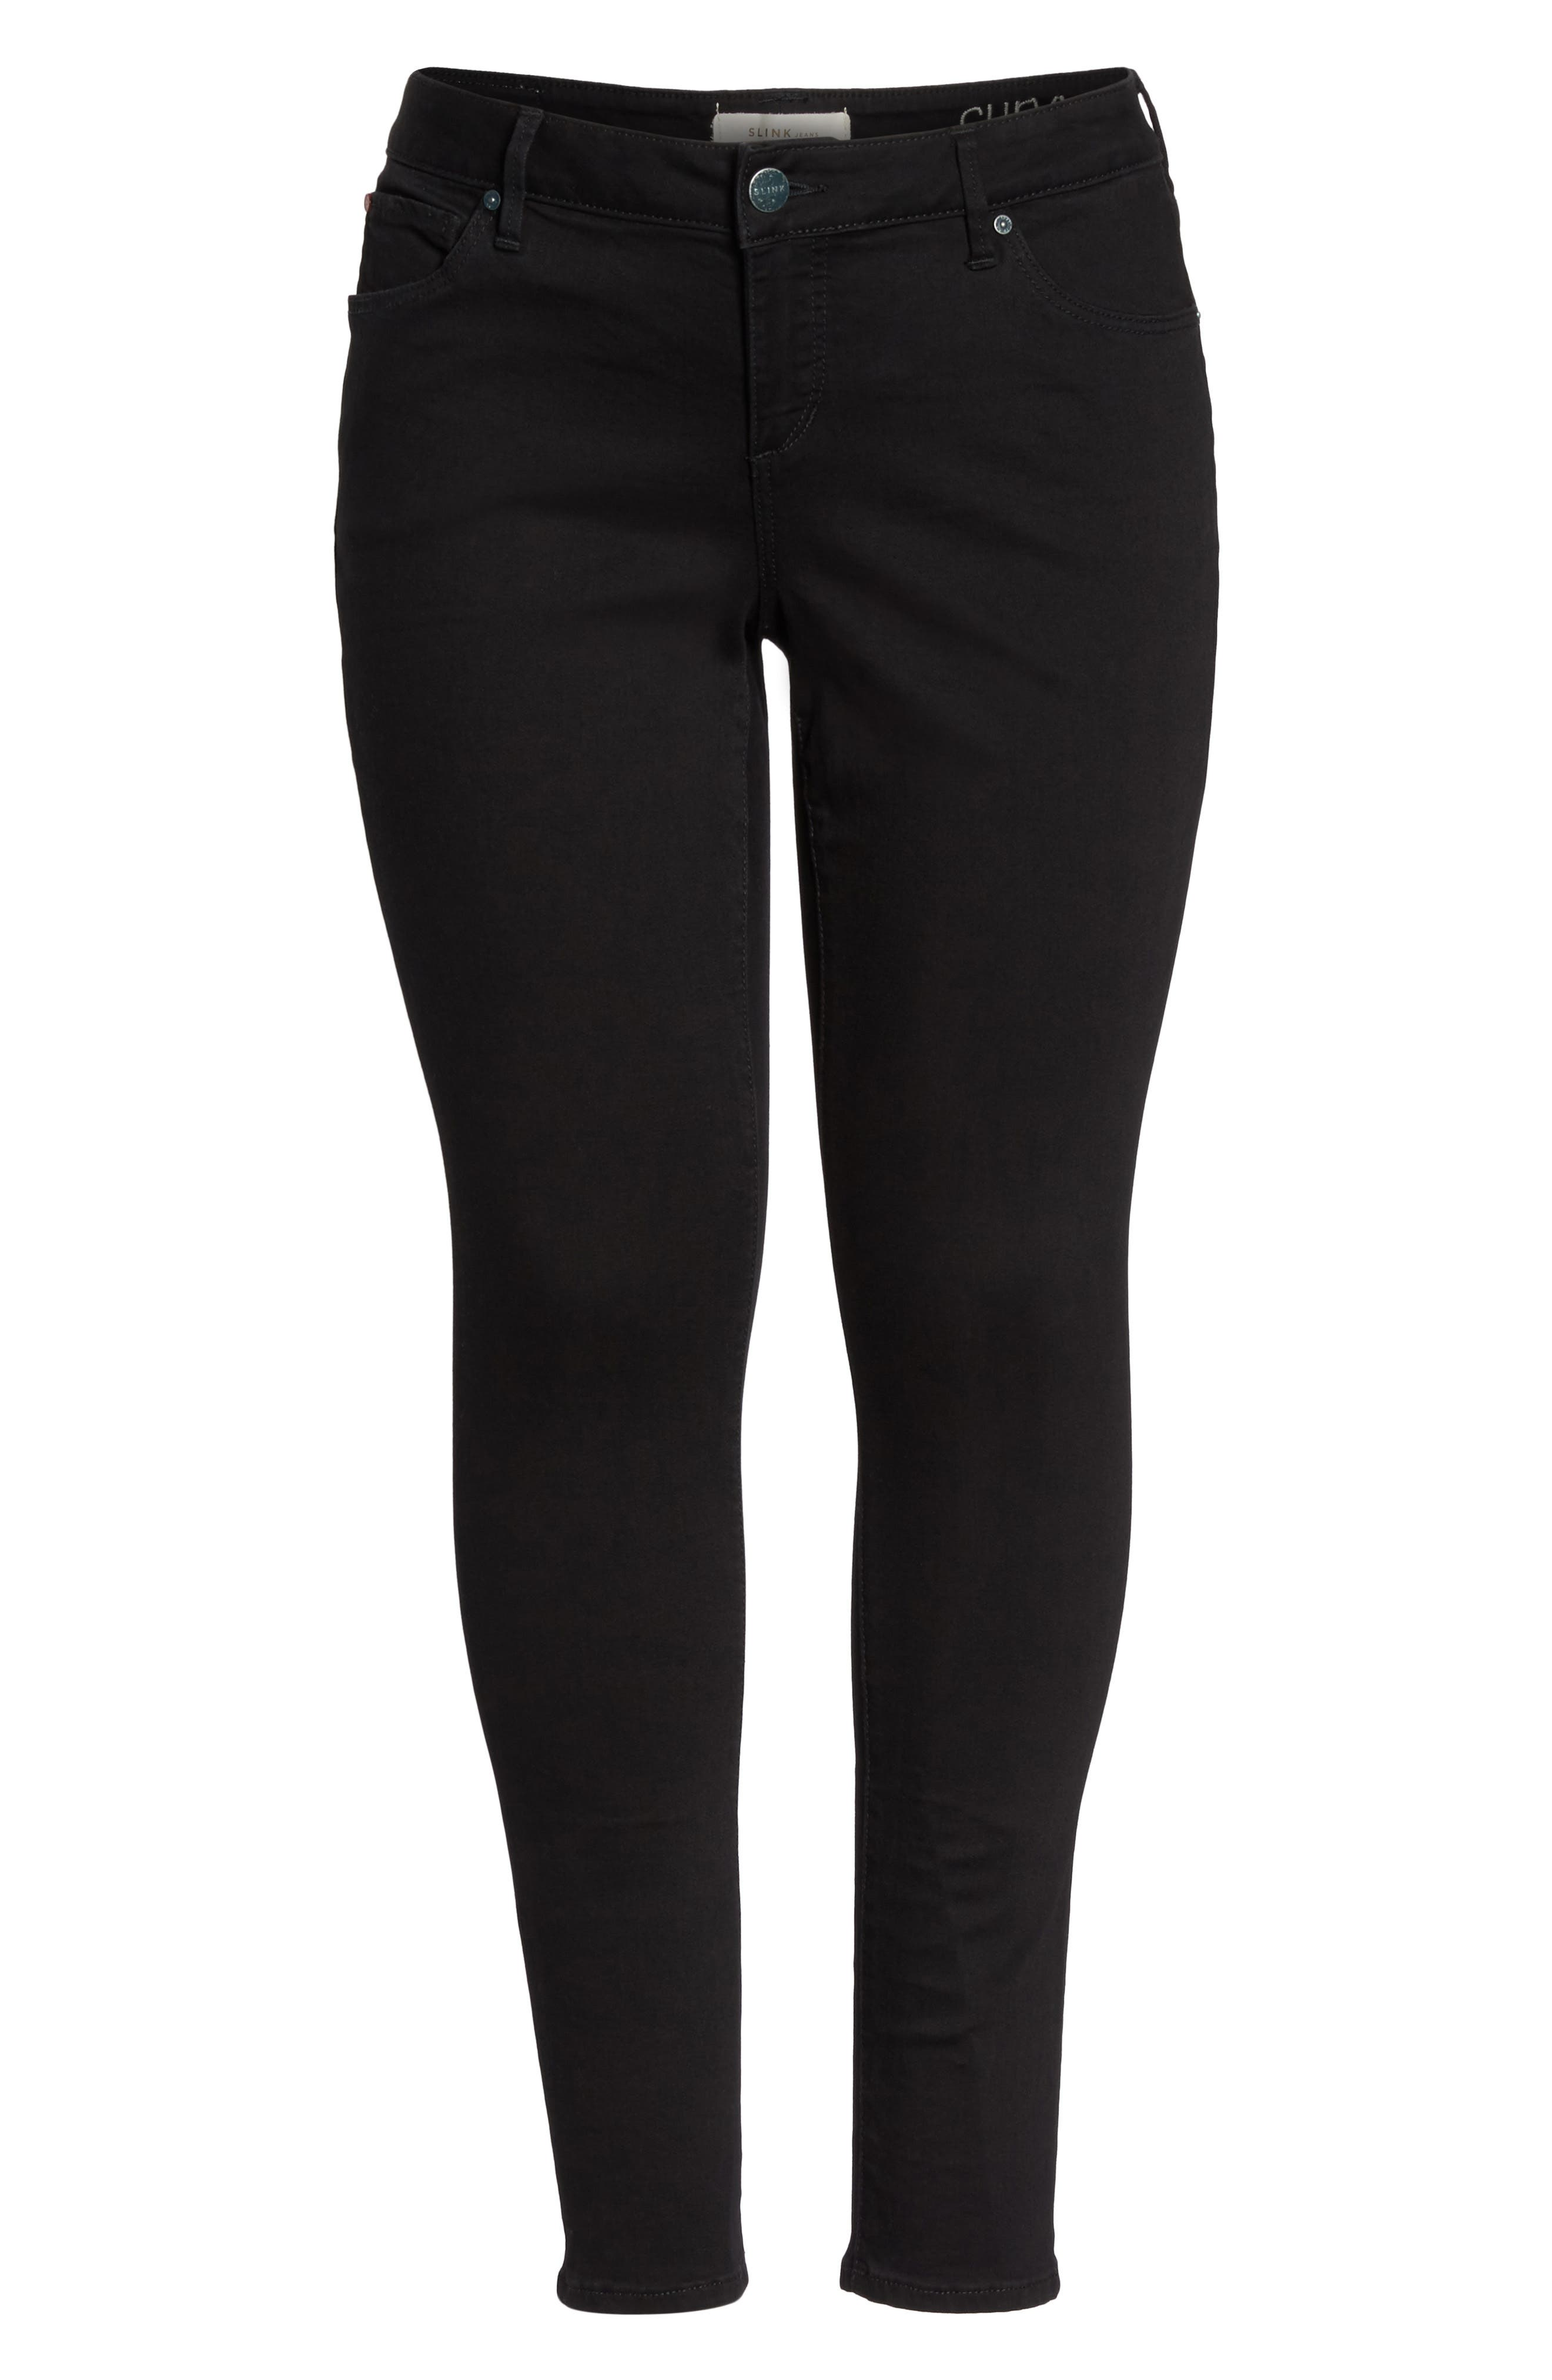 'The Skinny' Stretch Denim Jeans,                             Alternate thumbnail 4, color,                             BLACK